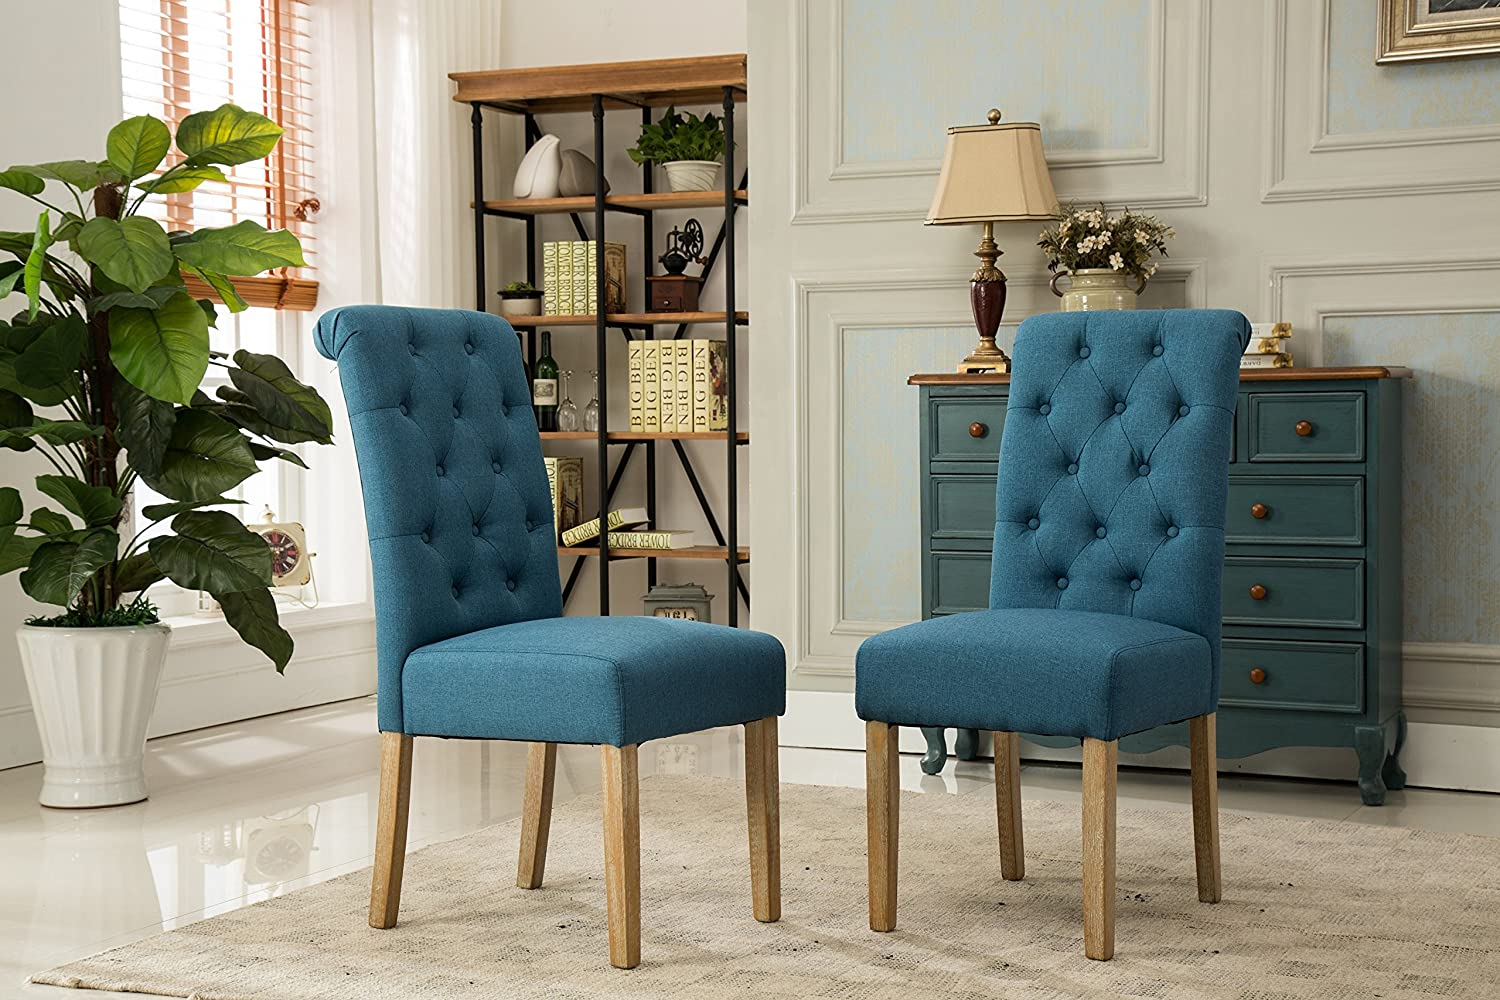 Amazon.com - Roundhill Furniture Habit Solid Wood Tufted Parsons ...